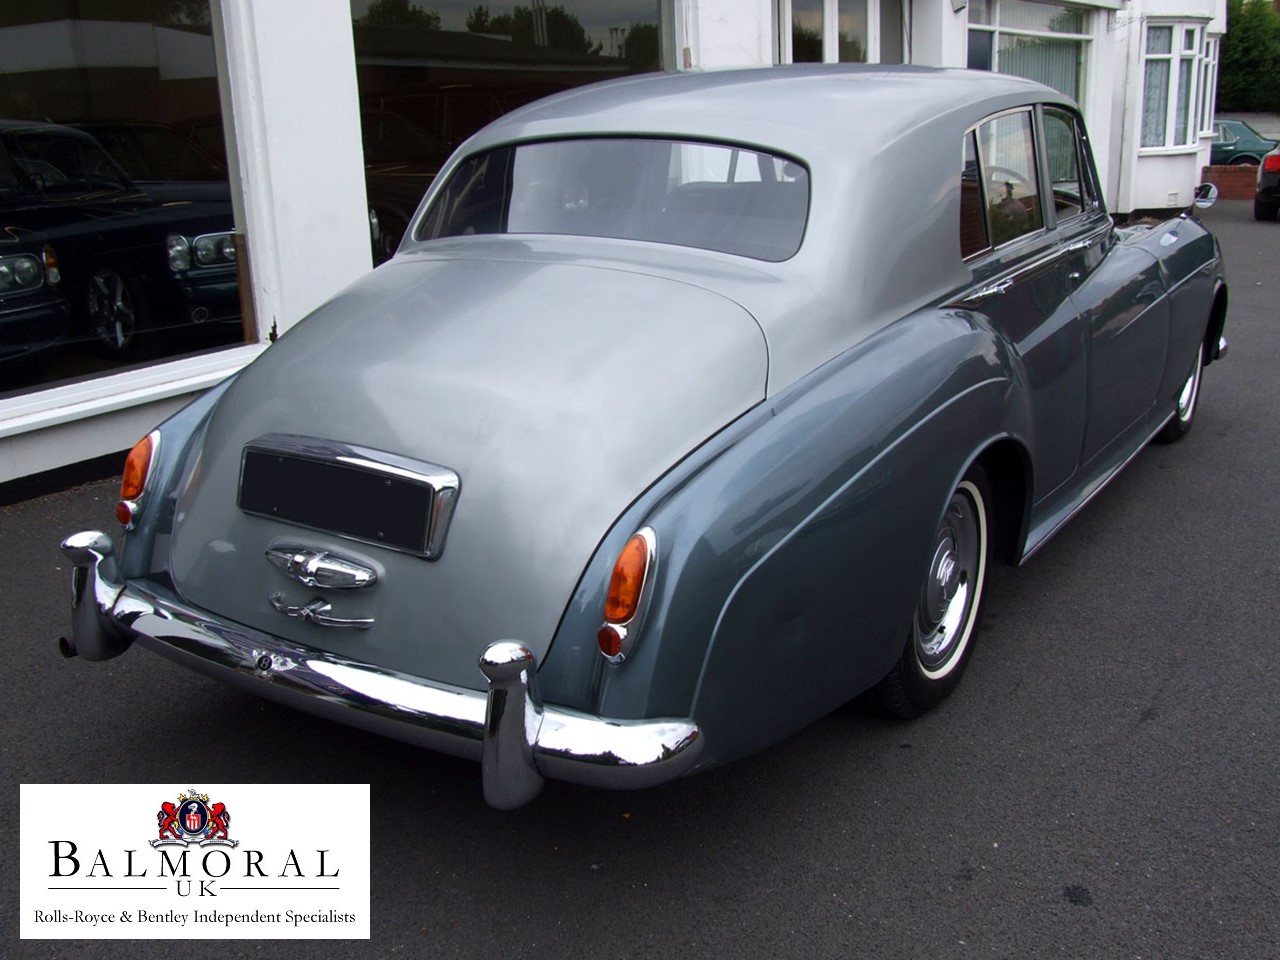 continental hj lots rm london j coup by sotheby mulliner en co auctions h s bentley